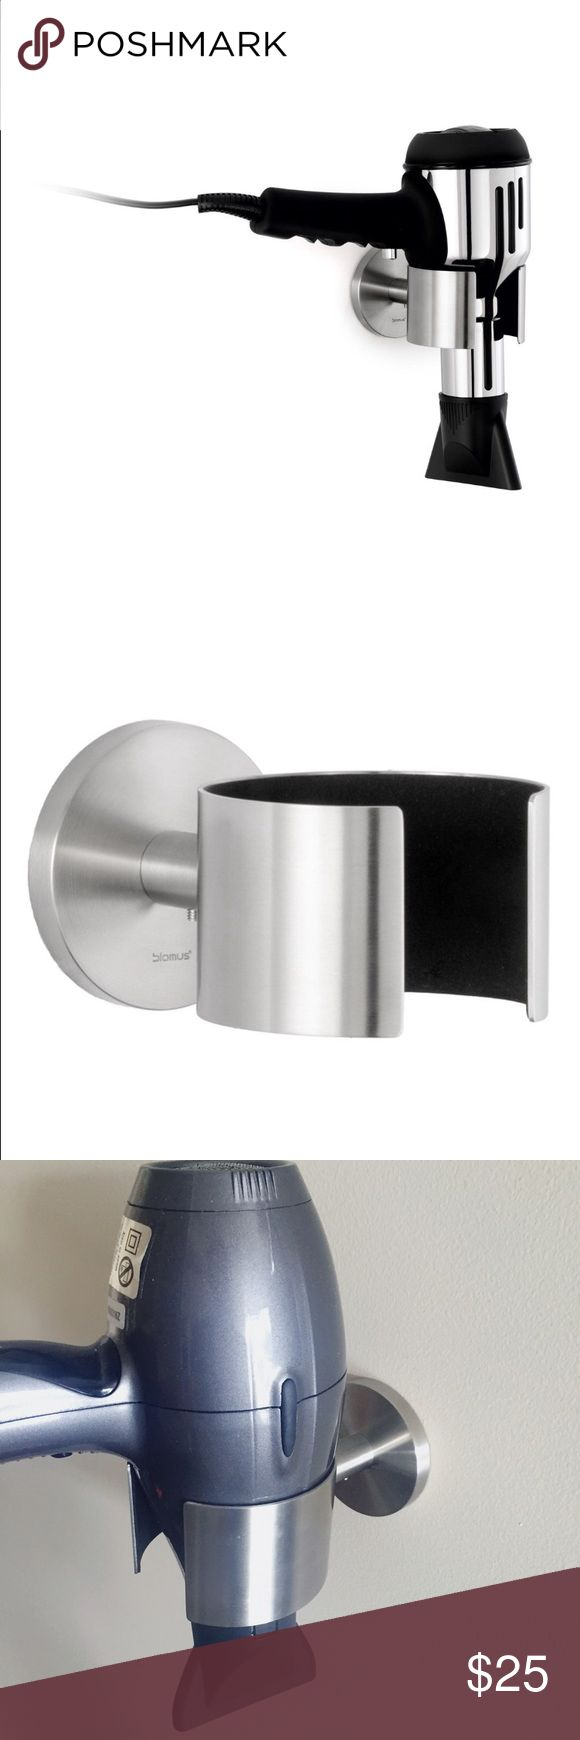 Blomus Holder for Hair Dryers This is a brand new, stainless steel hair dryer holder for your bathroom wall. This helps keep your blow dryer and bathroom neat and organized with its convenient wall mount. This includes all screws to mount the unit (just two holes) easily. Blomus Accessories Hair Accessories